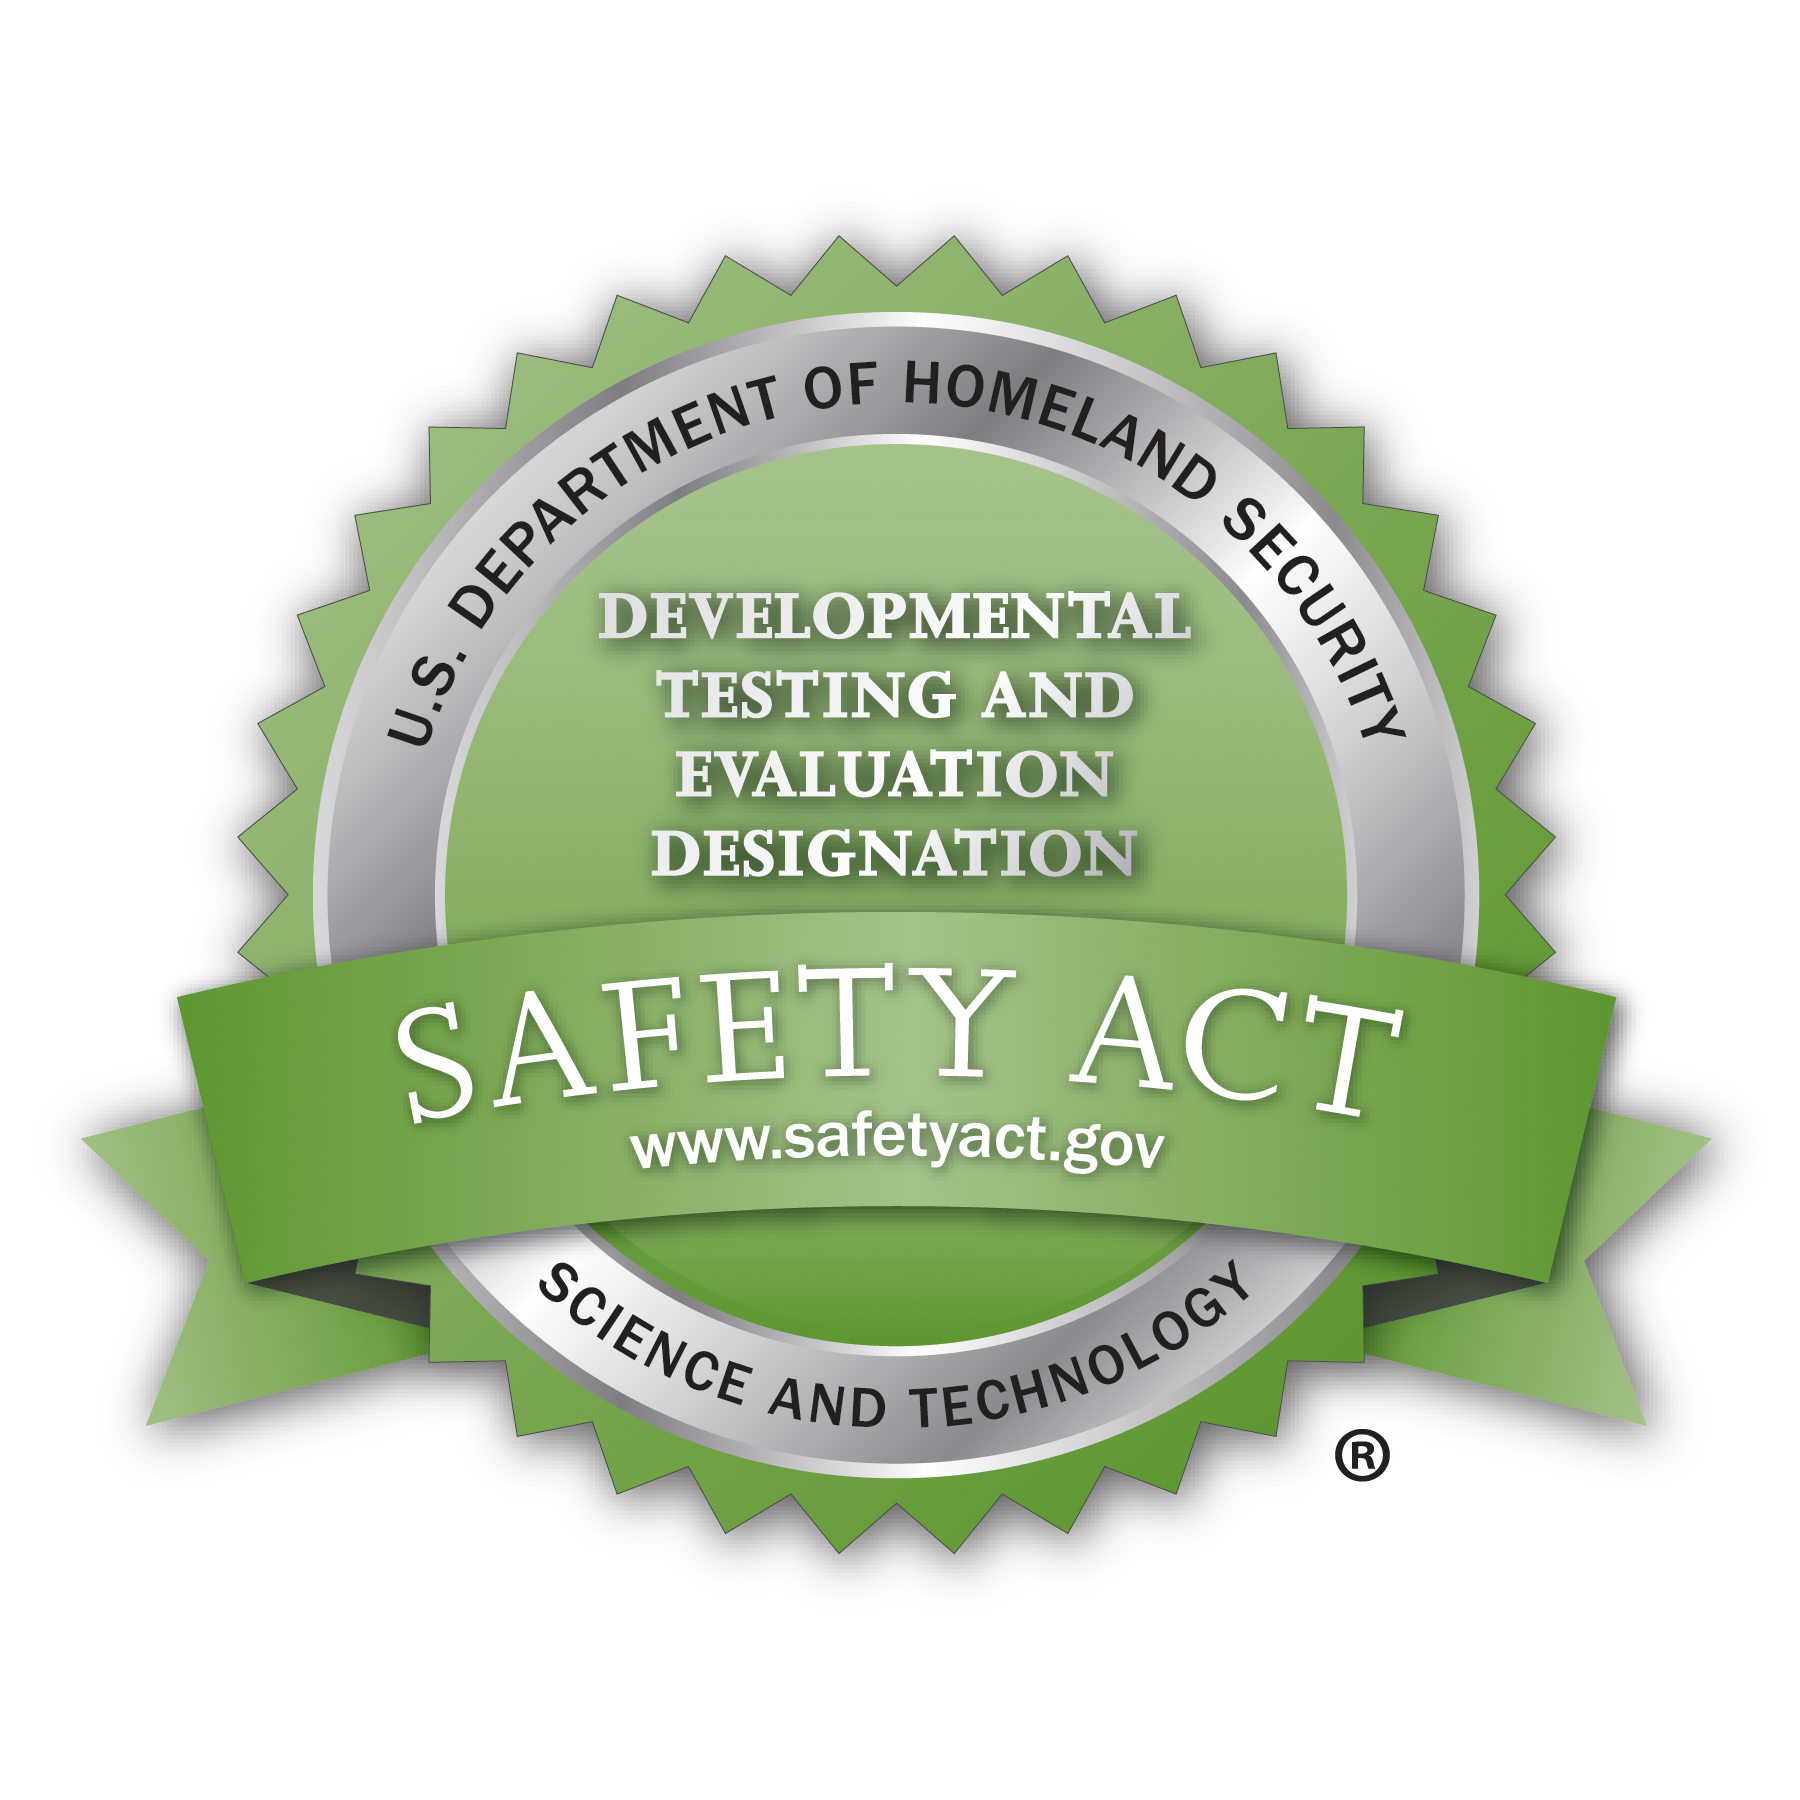 Red Ball Drills® SAFETY Act Award Sept. 9 2020